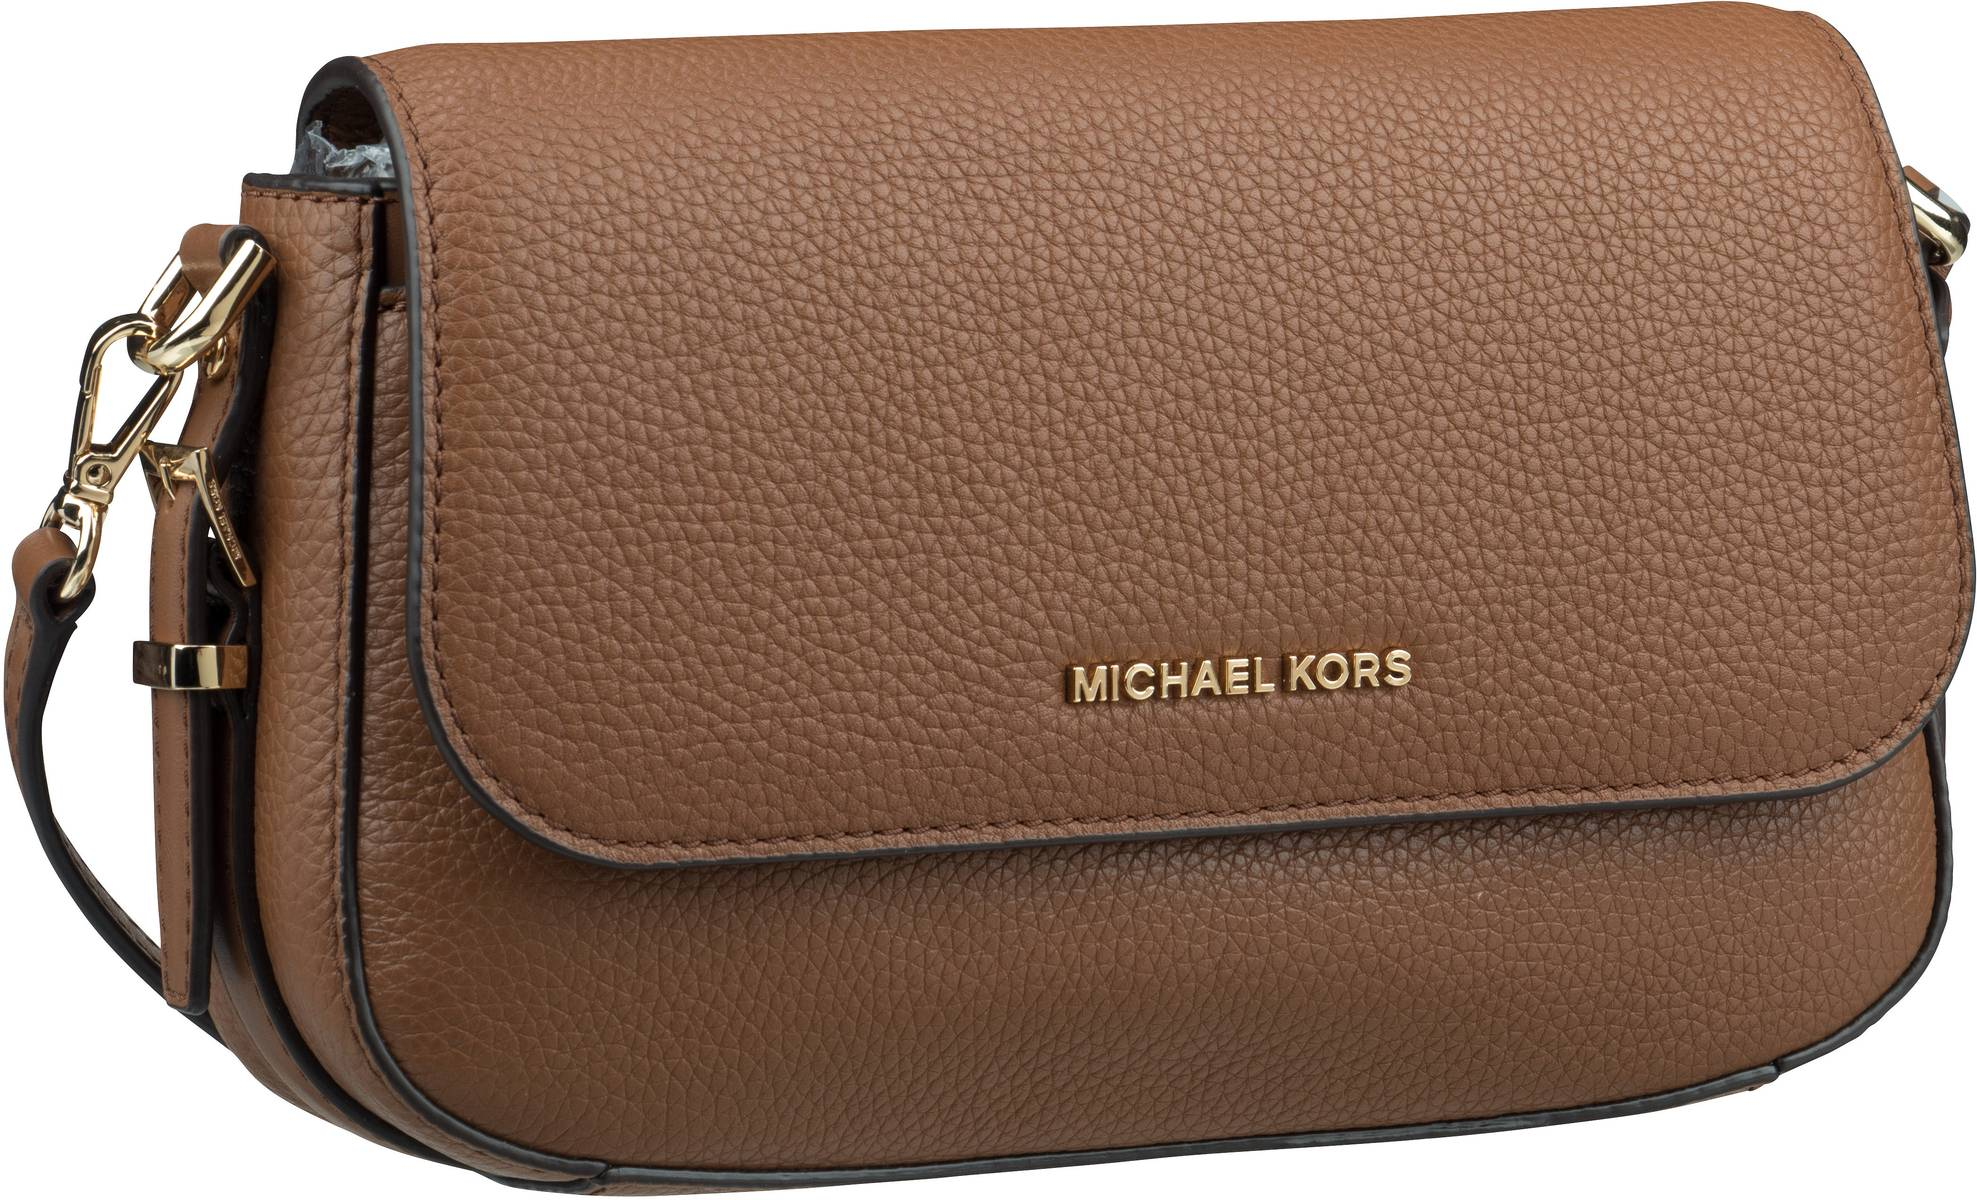 Michael Kors Umhängetasche Bedford Legacy Large Flap Xbody Luggage